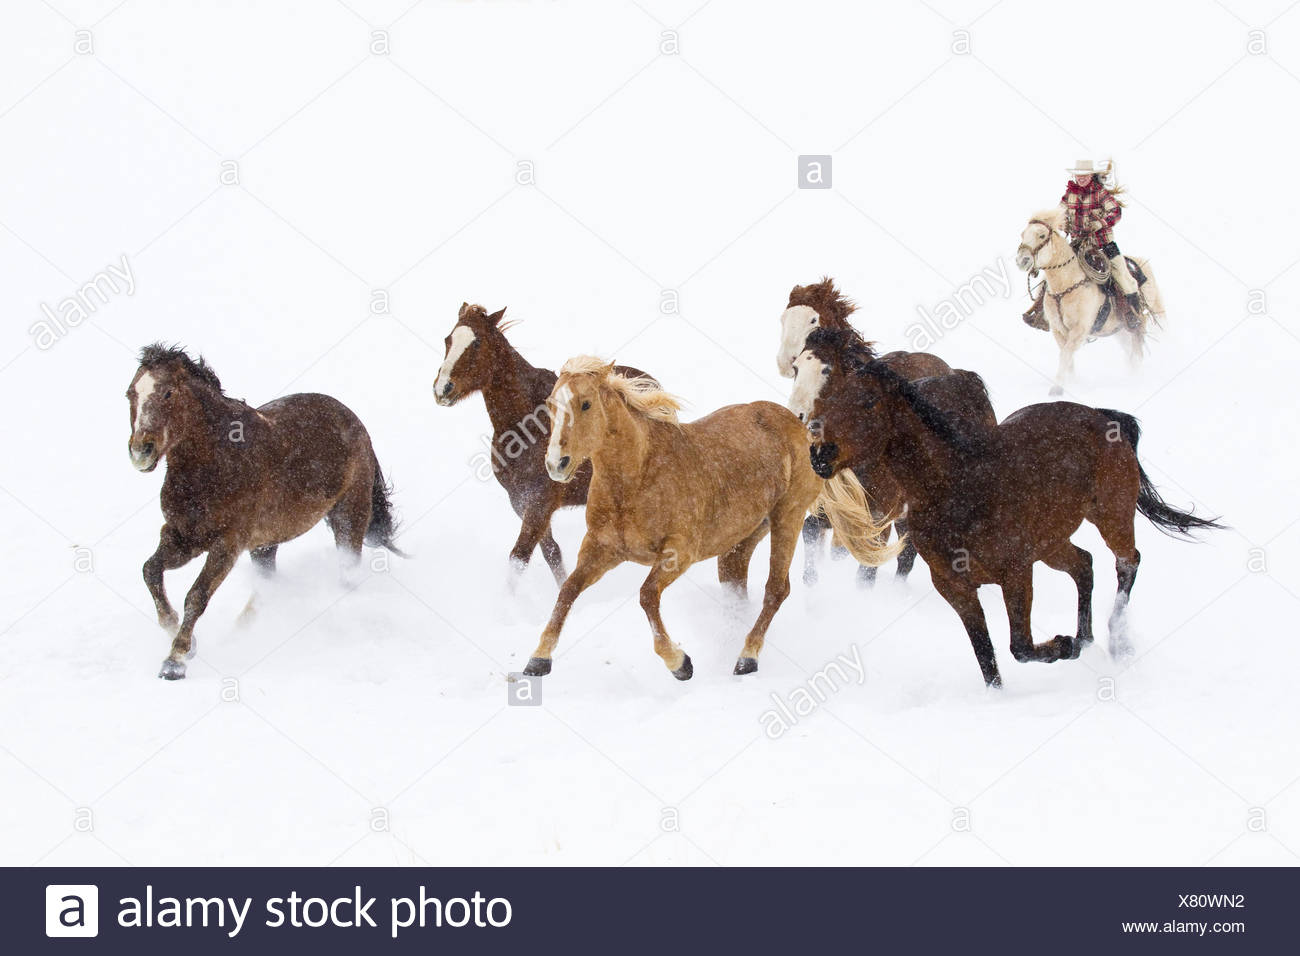 Cowboys drive a herd of horses through snow-covered pastures, Stock Photo